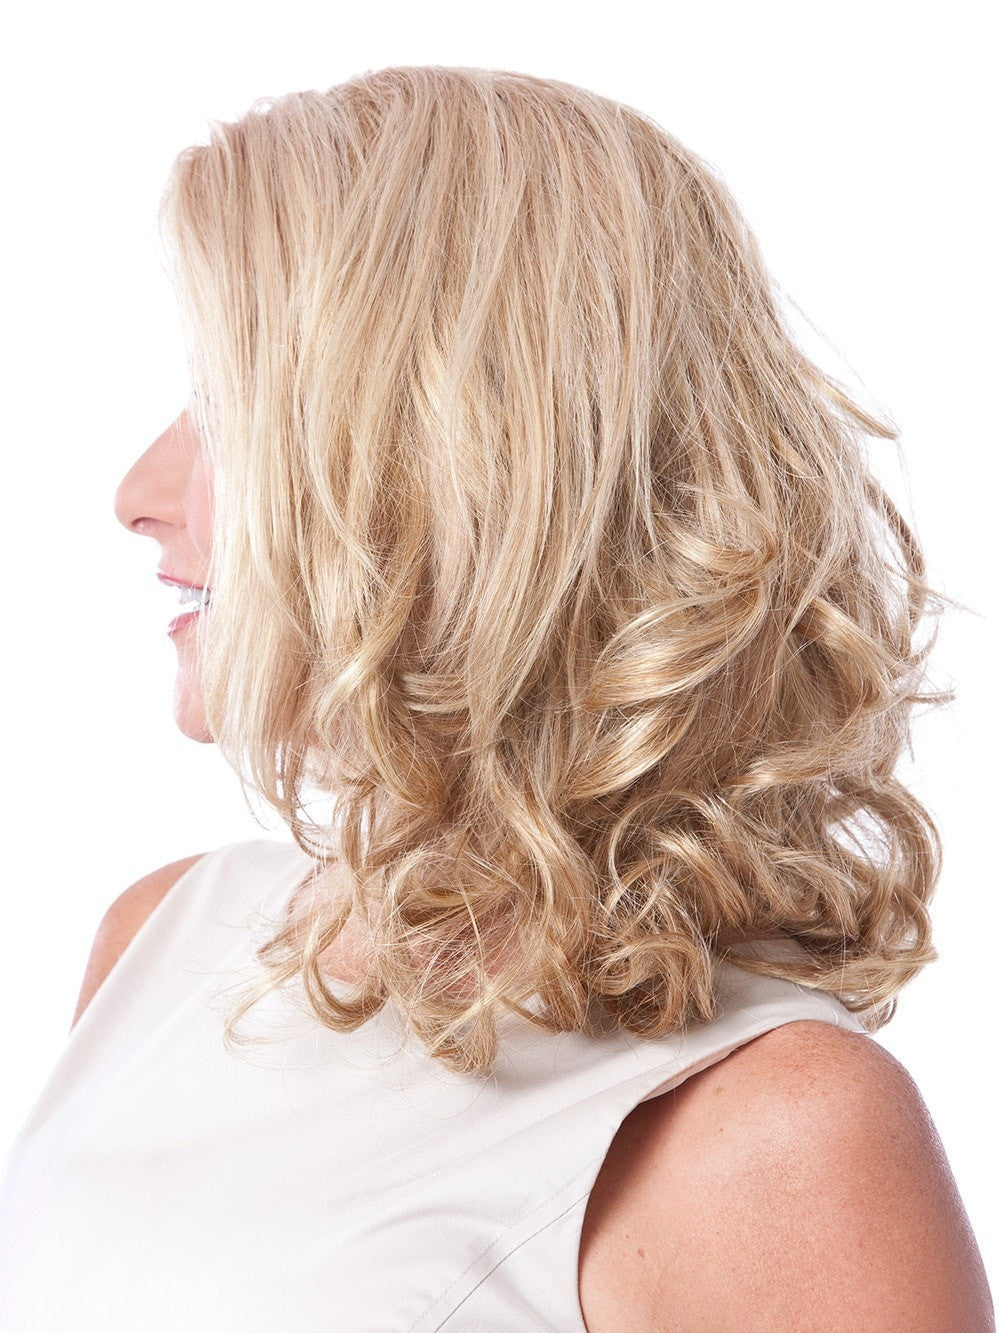 85 clip in extension curl 2pc by toni brattin hair clip in curly hair extension with 3 layers of hair that gives you fabulous fuller hair in an instant pmusecretfo Image collections